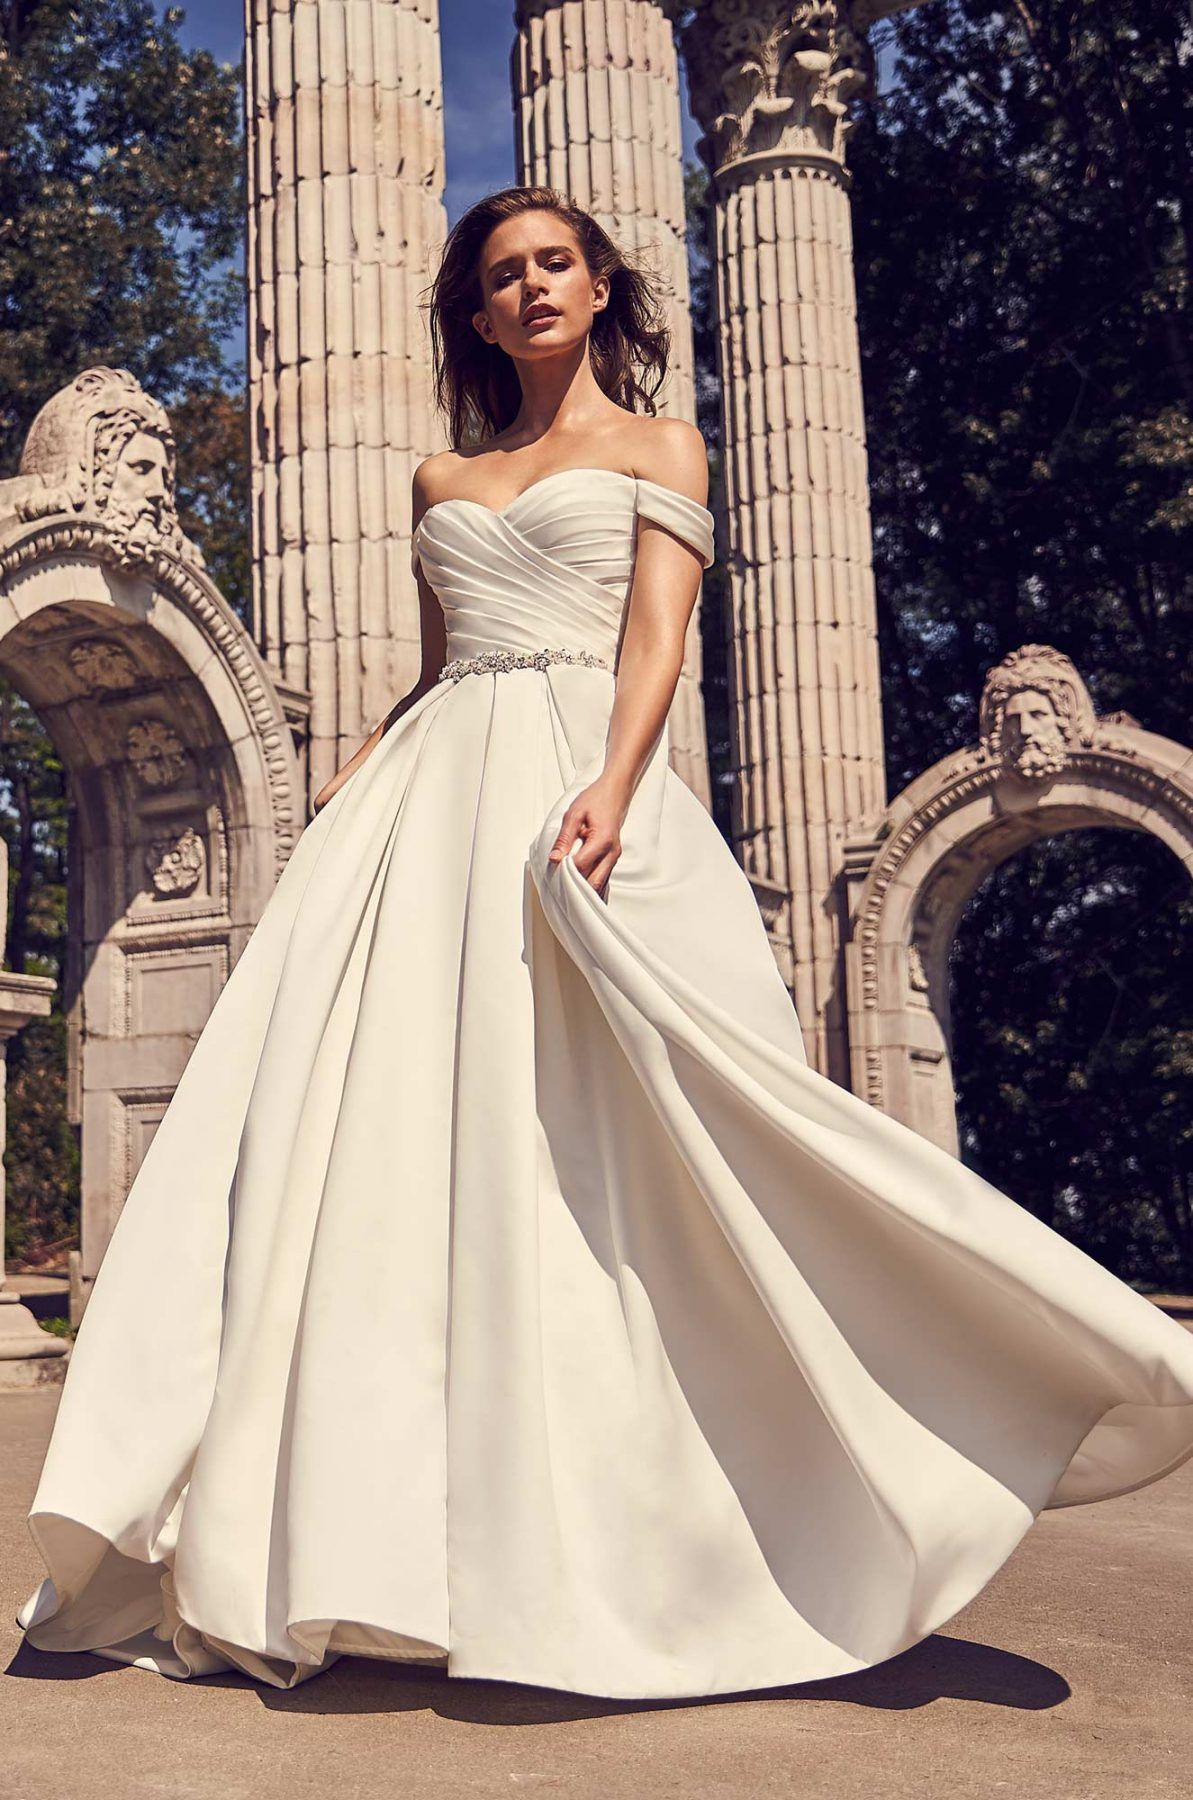 c58e02c1b73 Off the shoulder satin ball gown sweetheart neckline wedding dress.